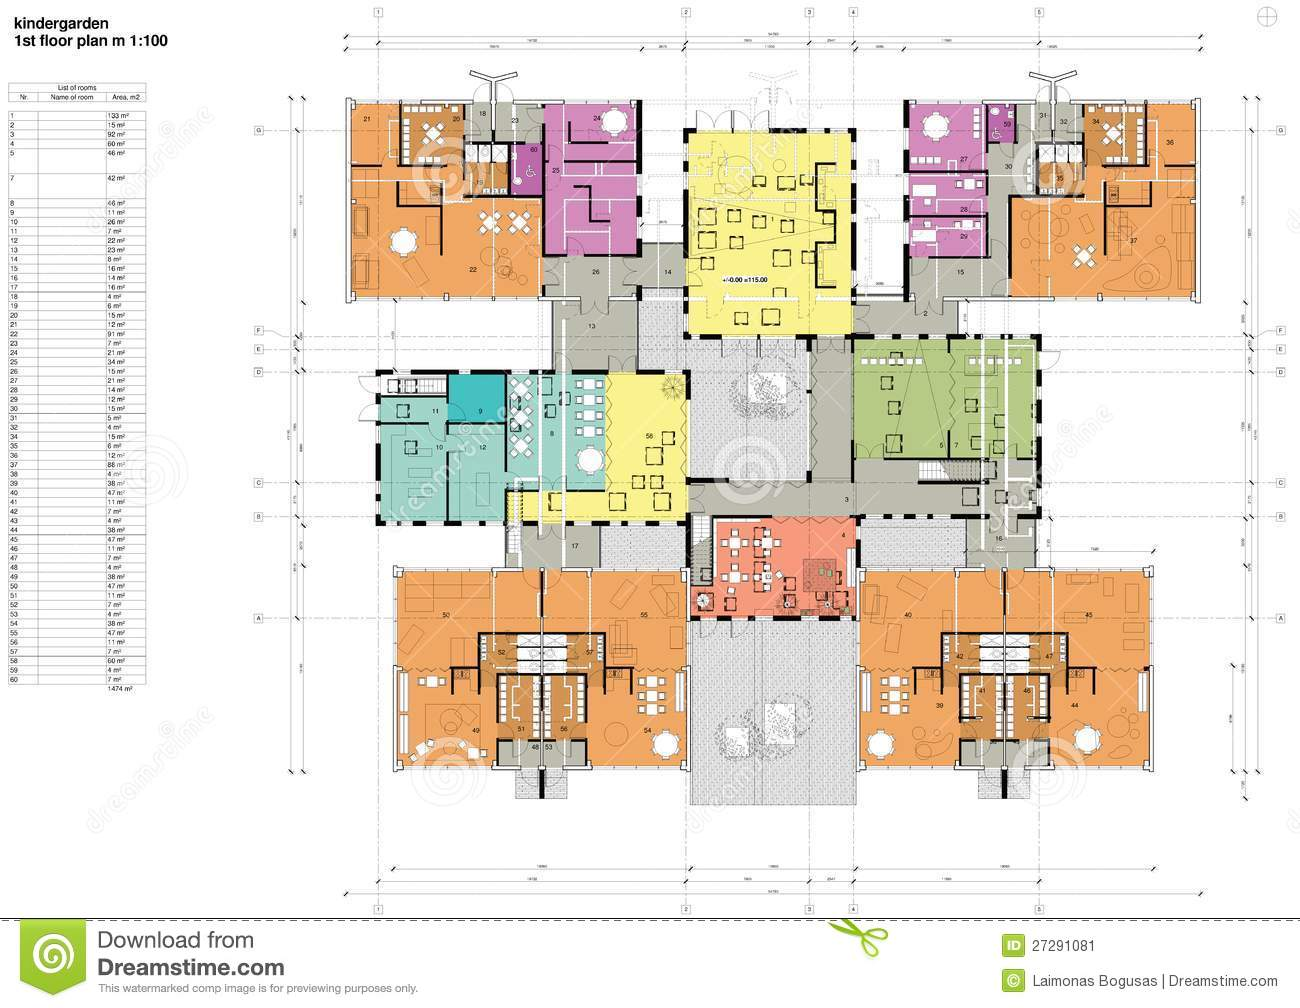 Free House Floor Plans Floor Plan Of The Kindergarten Stock Image Image 27291081